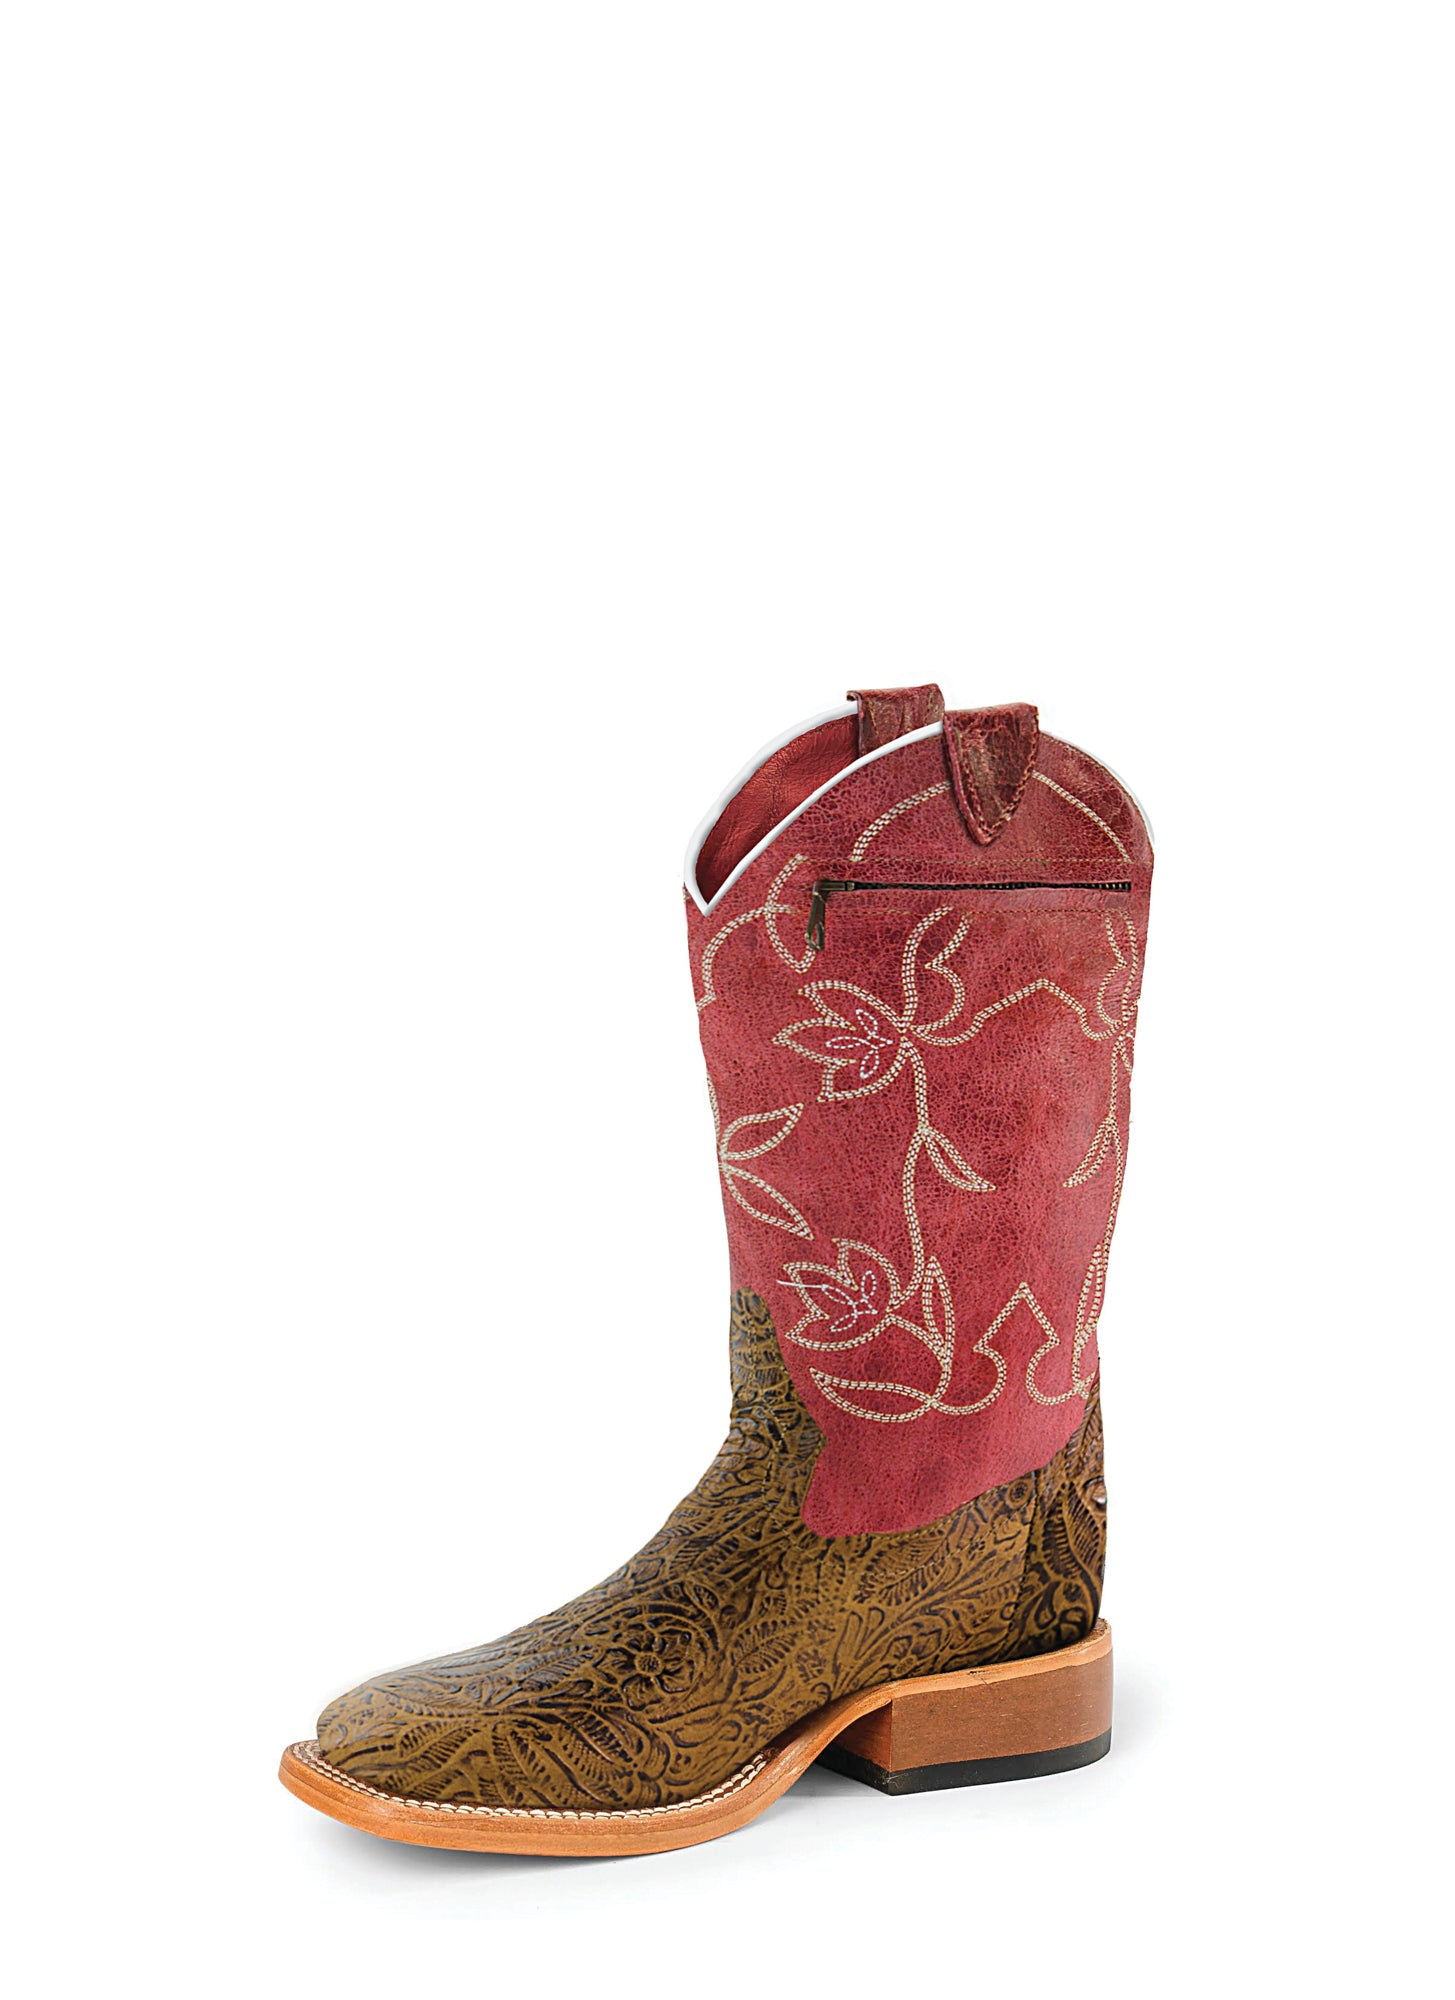 Kids 9 10 11 12 13 1 2 3 Smoky Mountain Girls Cowboy Cowgirl Boots Brown Red